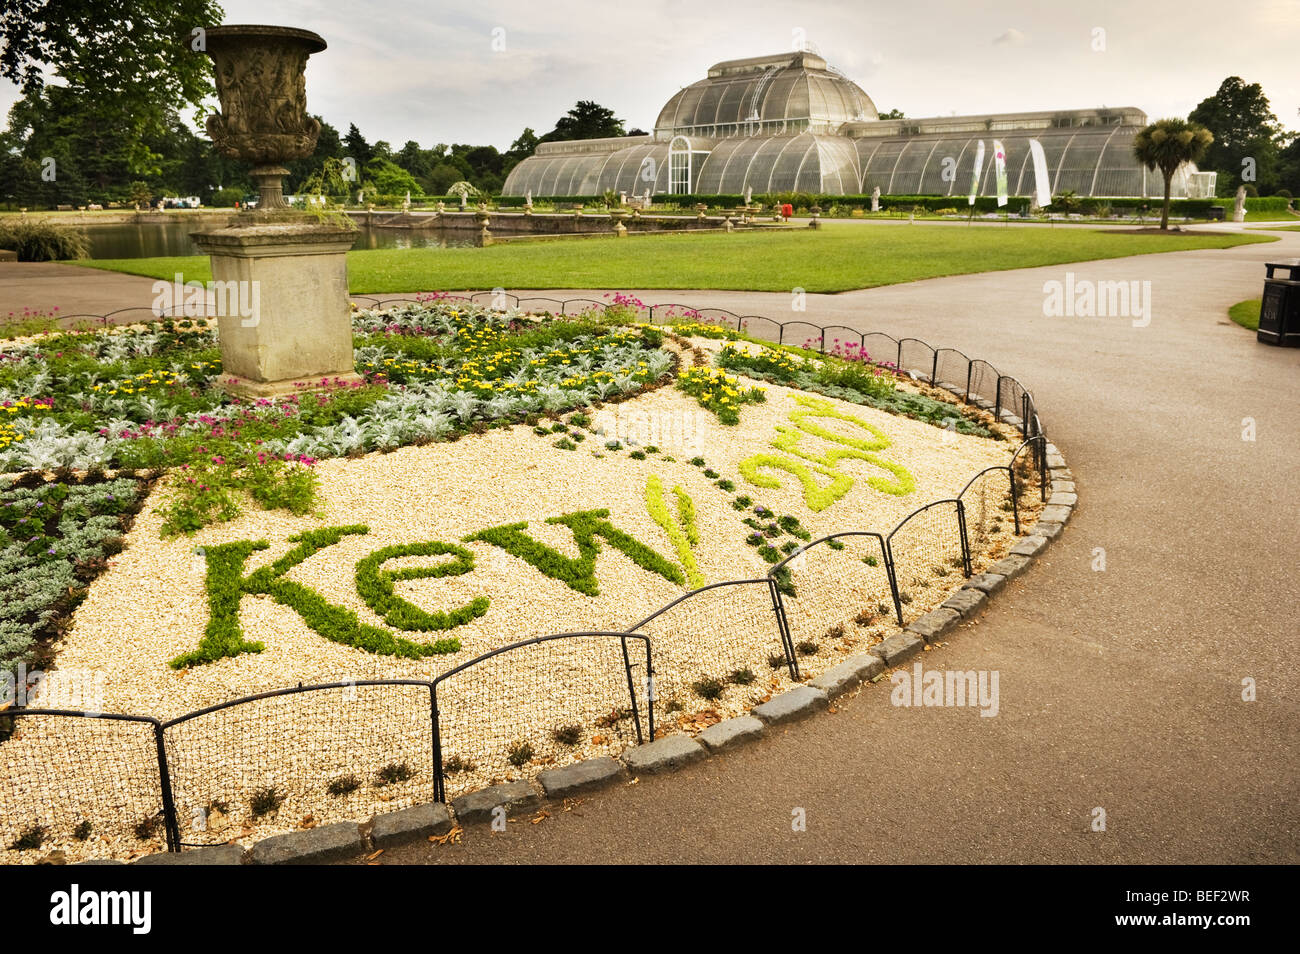 A flowerbed with the writing 'Kew 250th' in green plants. - Stock Image